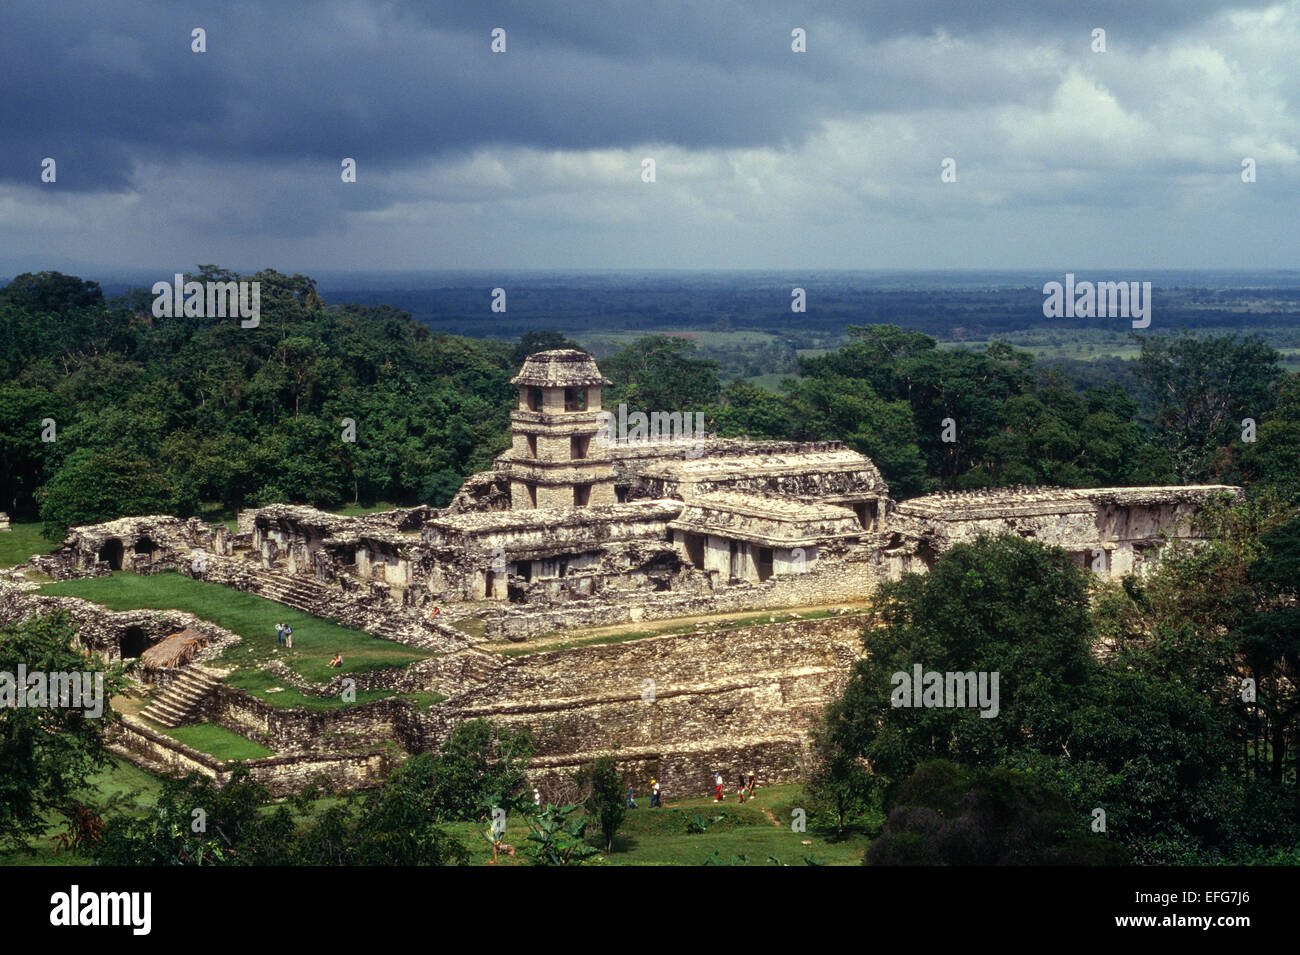 The Palace. Maya architecture, Palenque. Mexico - Stock Image